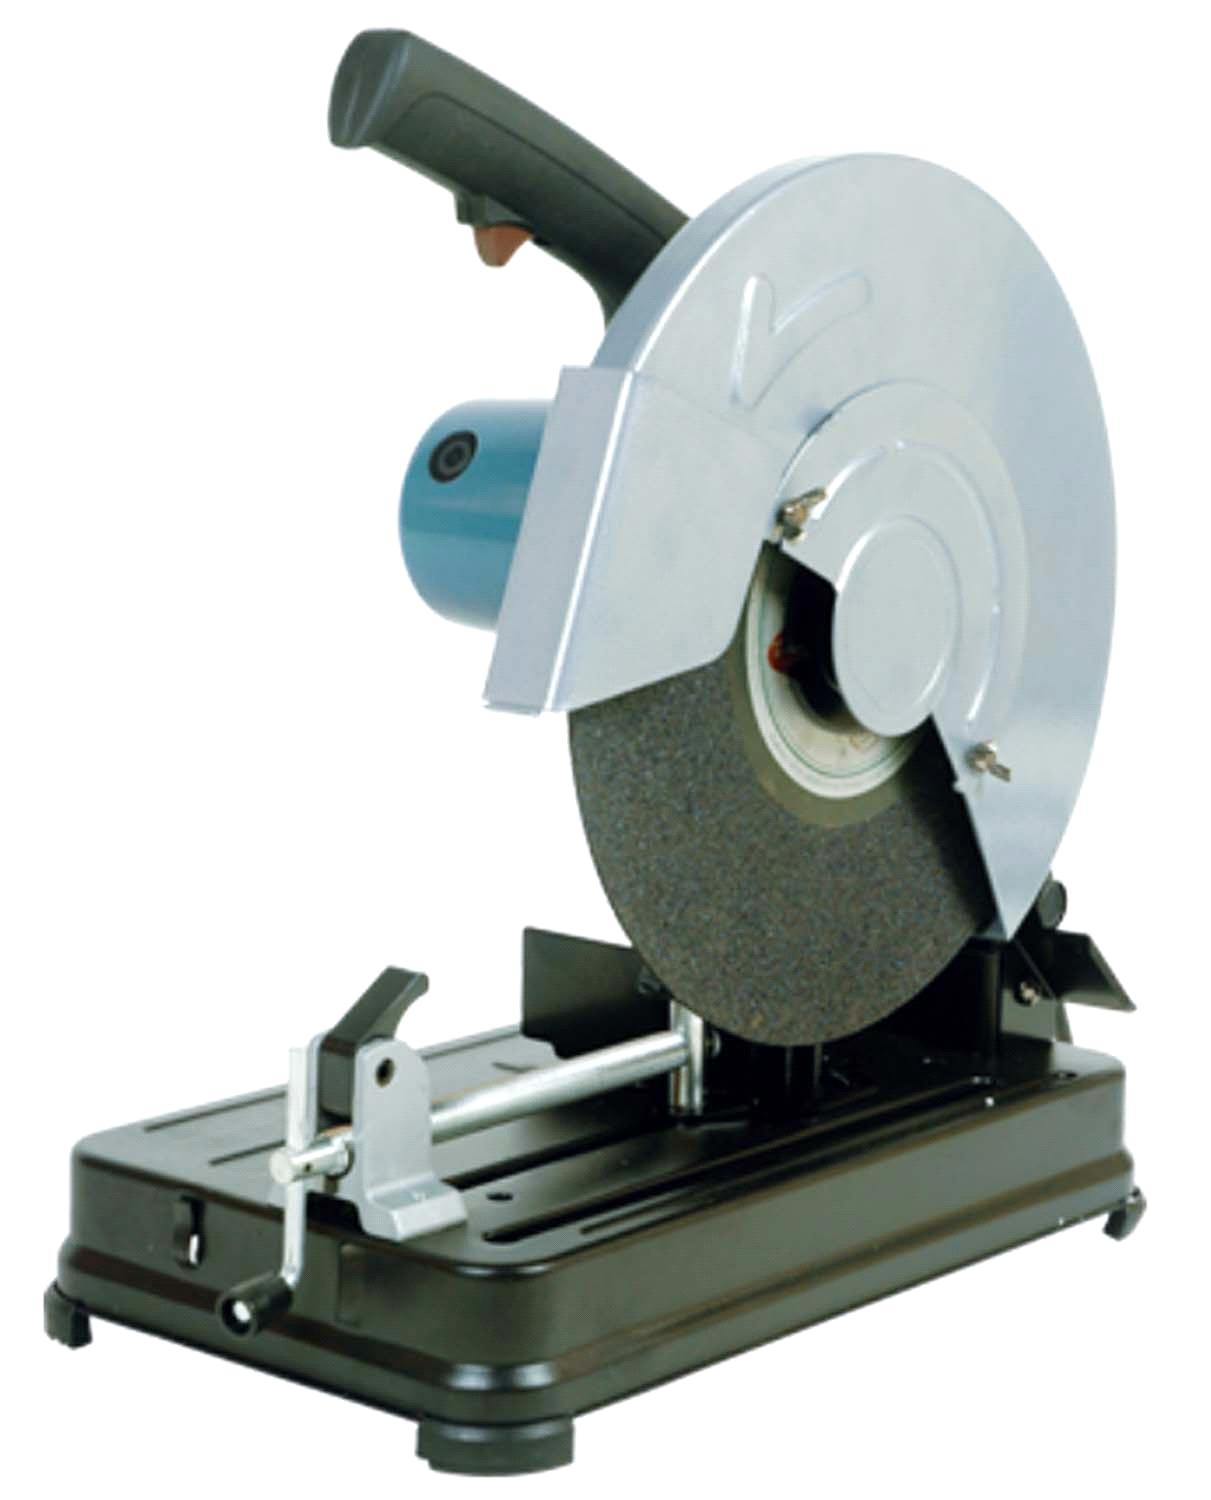 Metal Cutter Agent Singapore: Cutting-Off Grinder Purchasing, Souring Agent